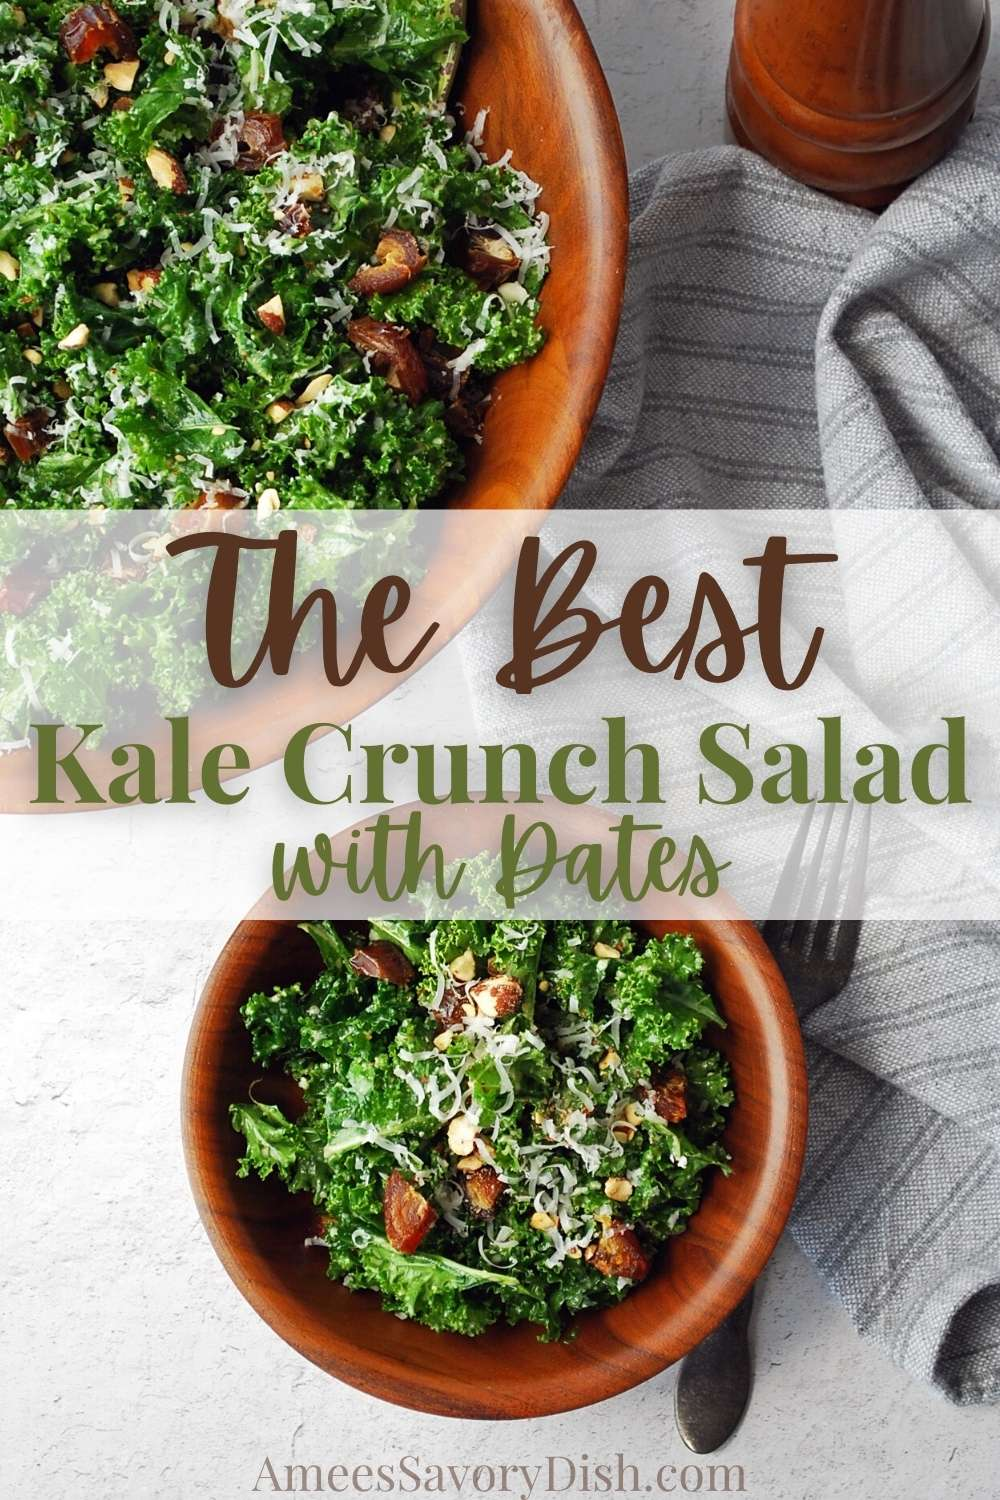 A deliciously simple kale salad made with dates, Parmesan cheese, and almonds topped with a homemade lemon vinaigrette dressing. #kalesalad #kale #saladrecipe #thebestsalads via @Ameessavorydish